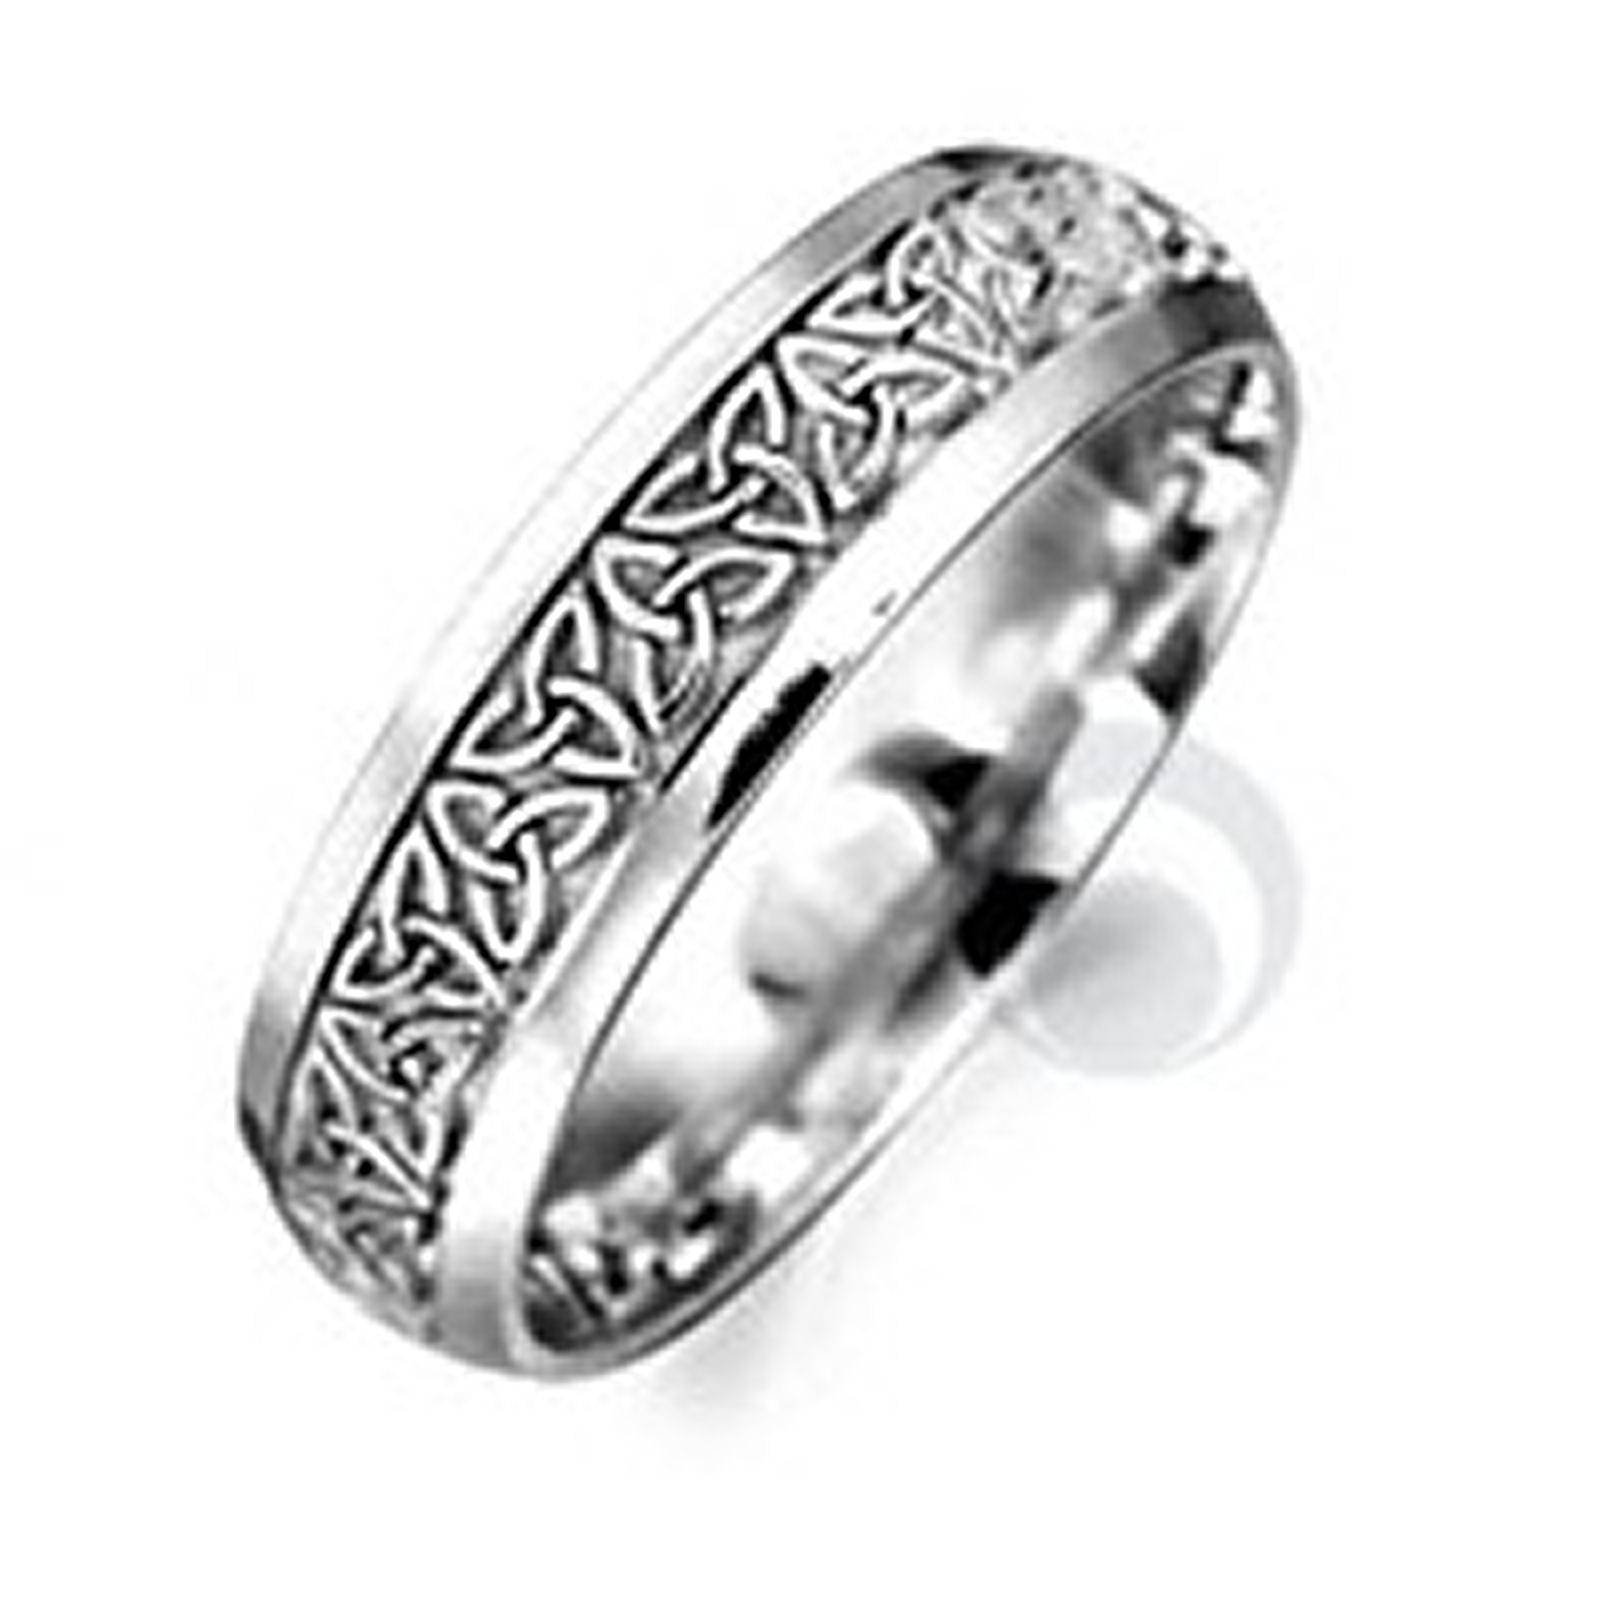 Celtic Patterned Platinum Wedding Ring Wedding Dress From The Intended For Mens Celtic Engagement Rings (View 3 of 15)